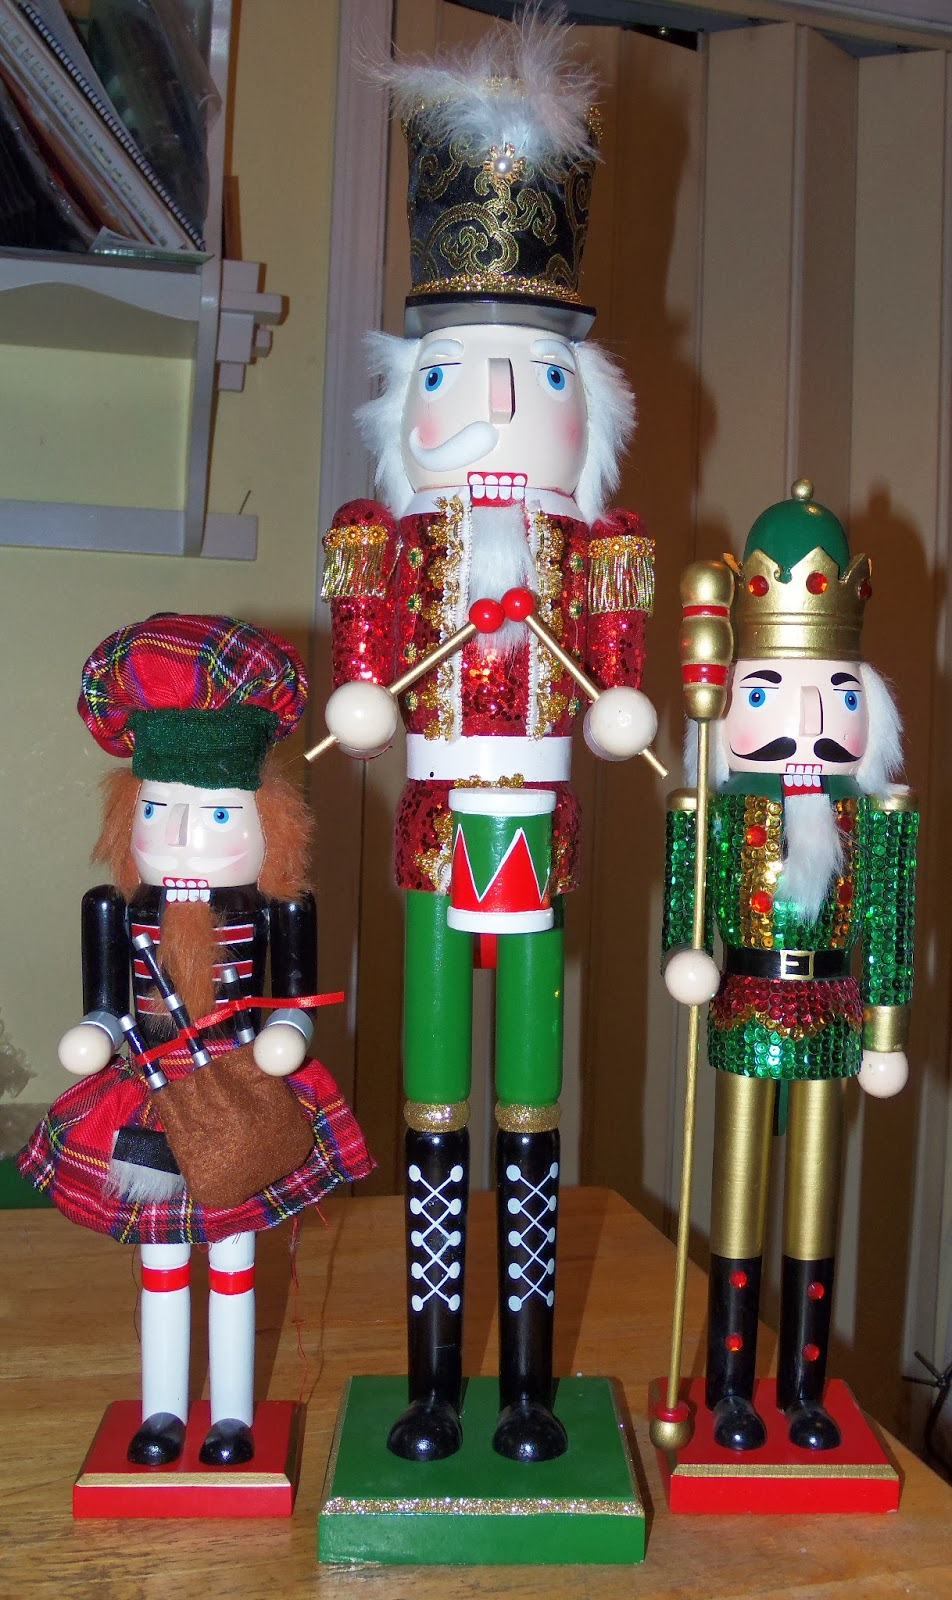 tales from the love shaque  i was tickled to get my second bagpiper at joann fabrics the same evening the tallest one is missing half his mustache but i can repair that